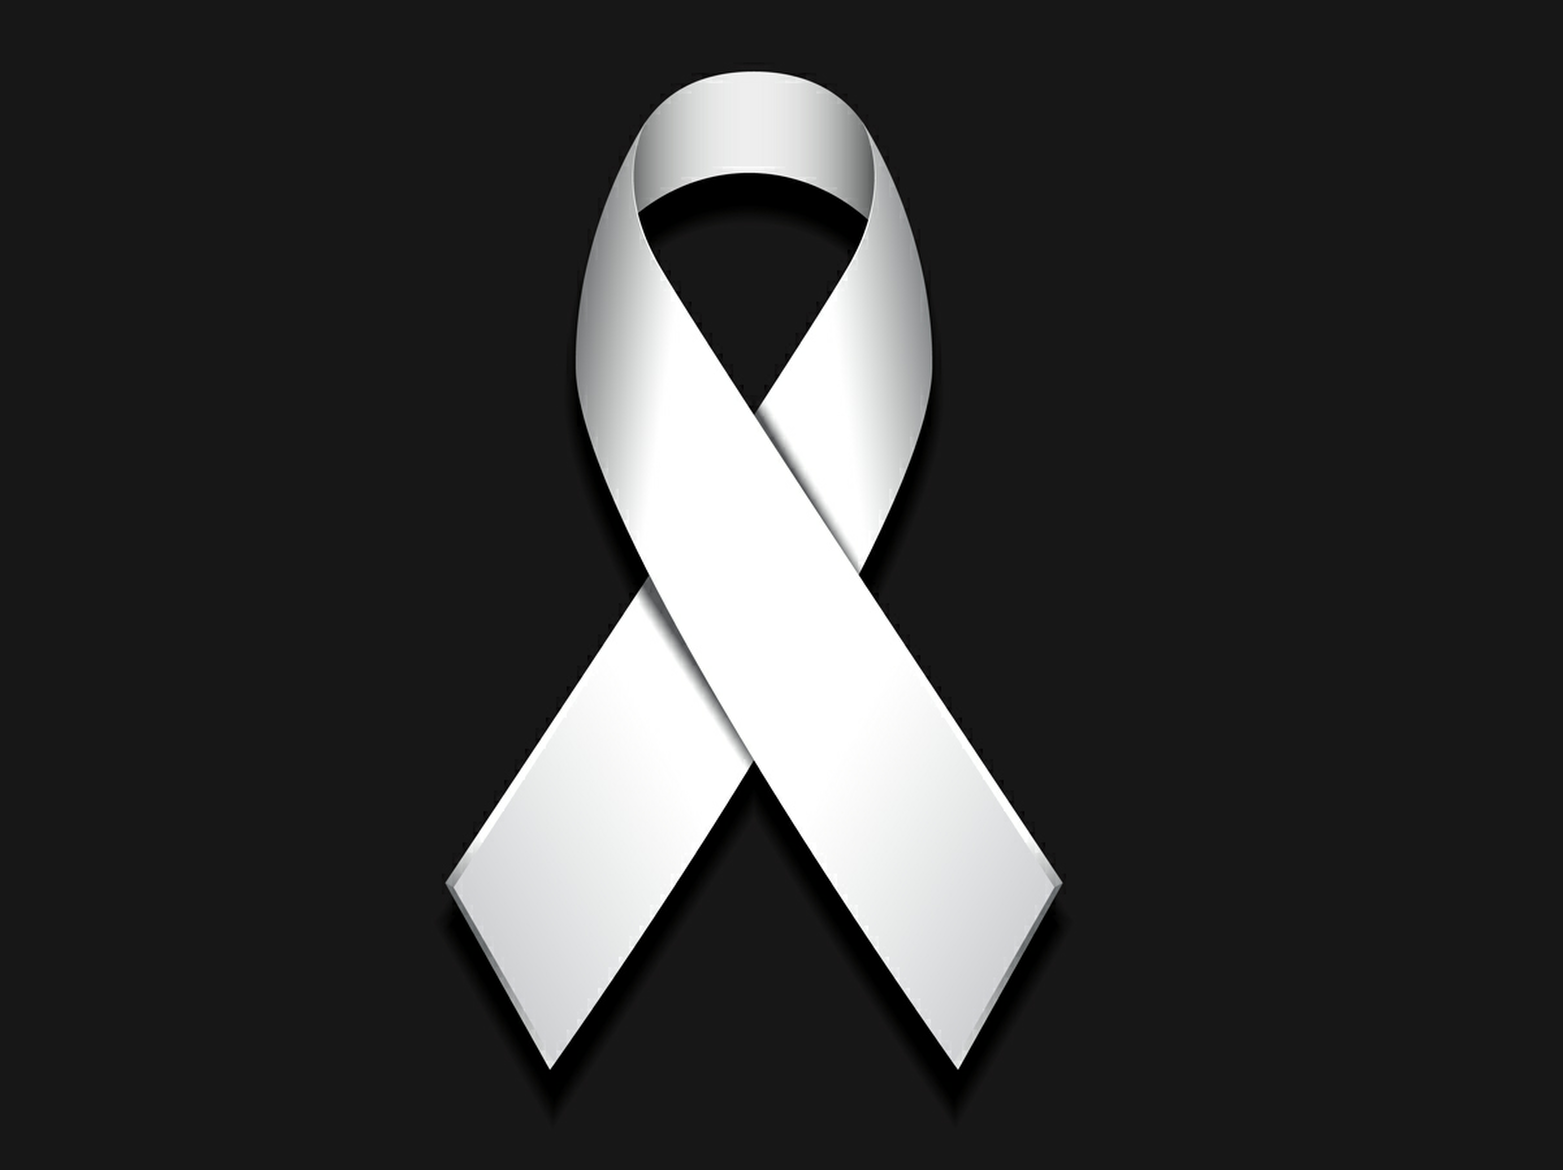 Motion: Domestic Violence and the White Ribbon Campaign